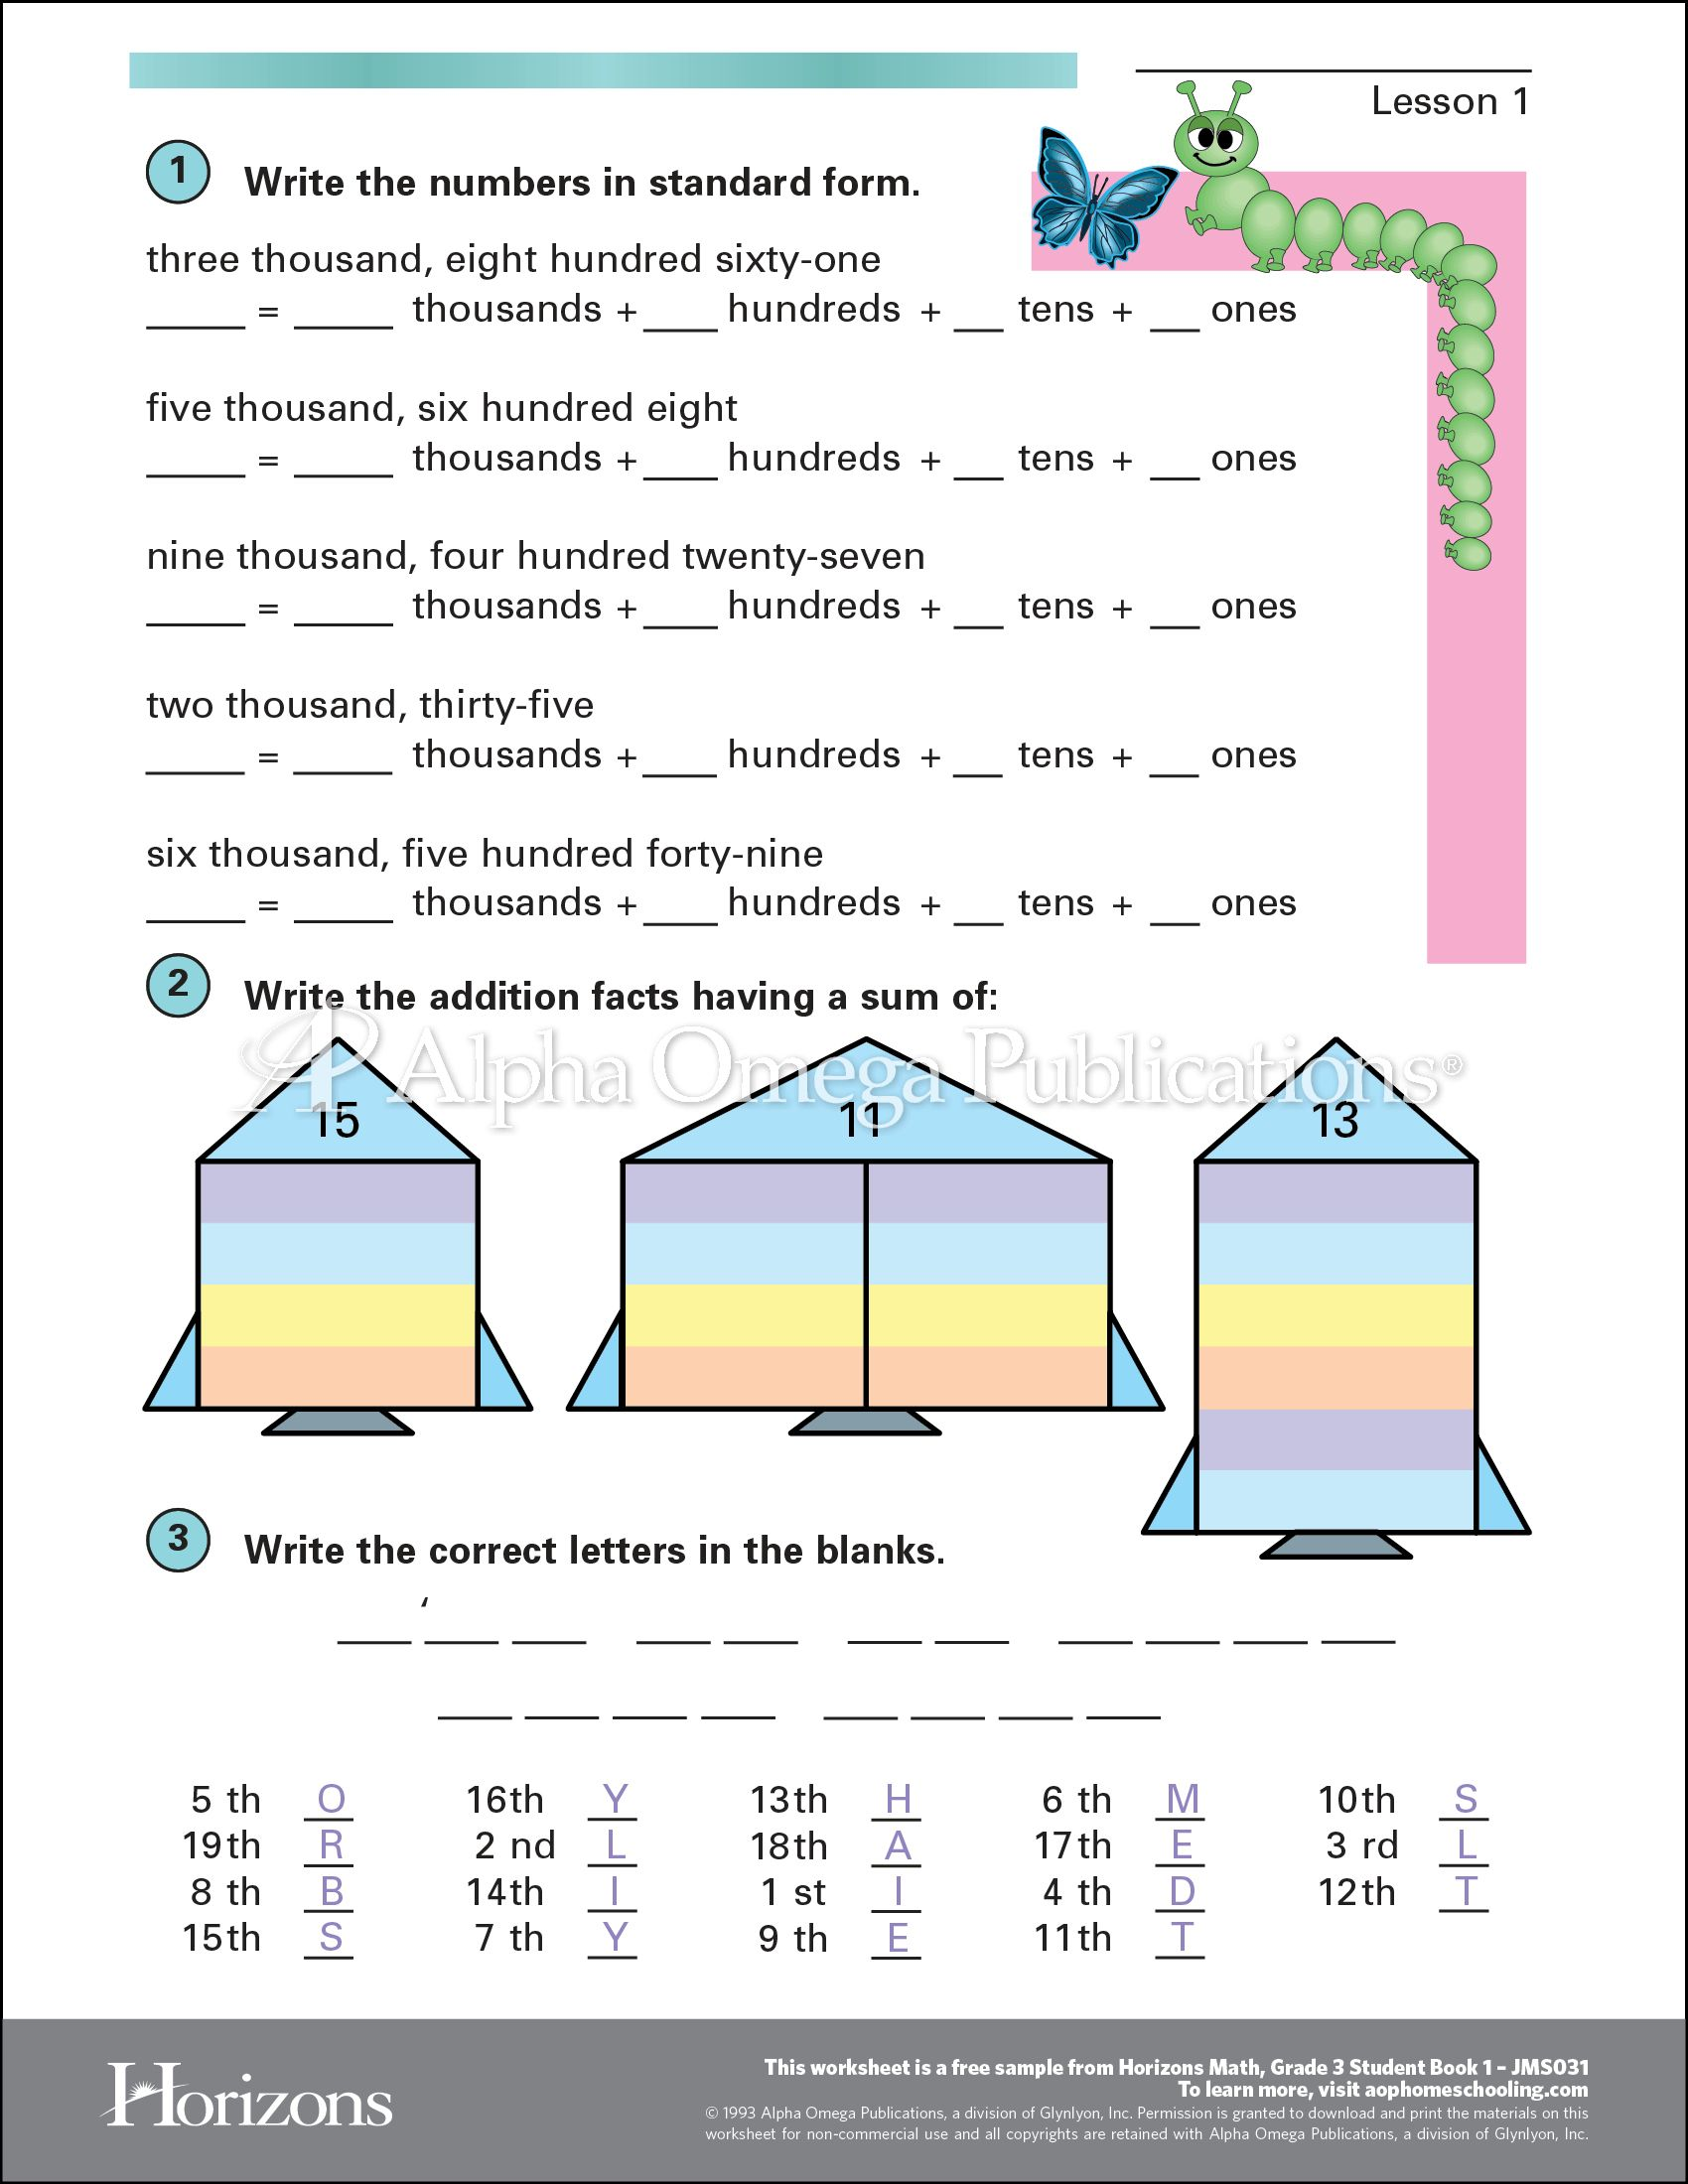 Aop Horizons Free Printable Worksheet Sample Page Download